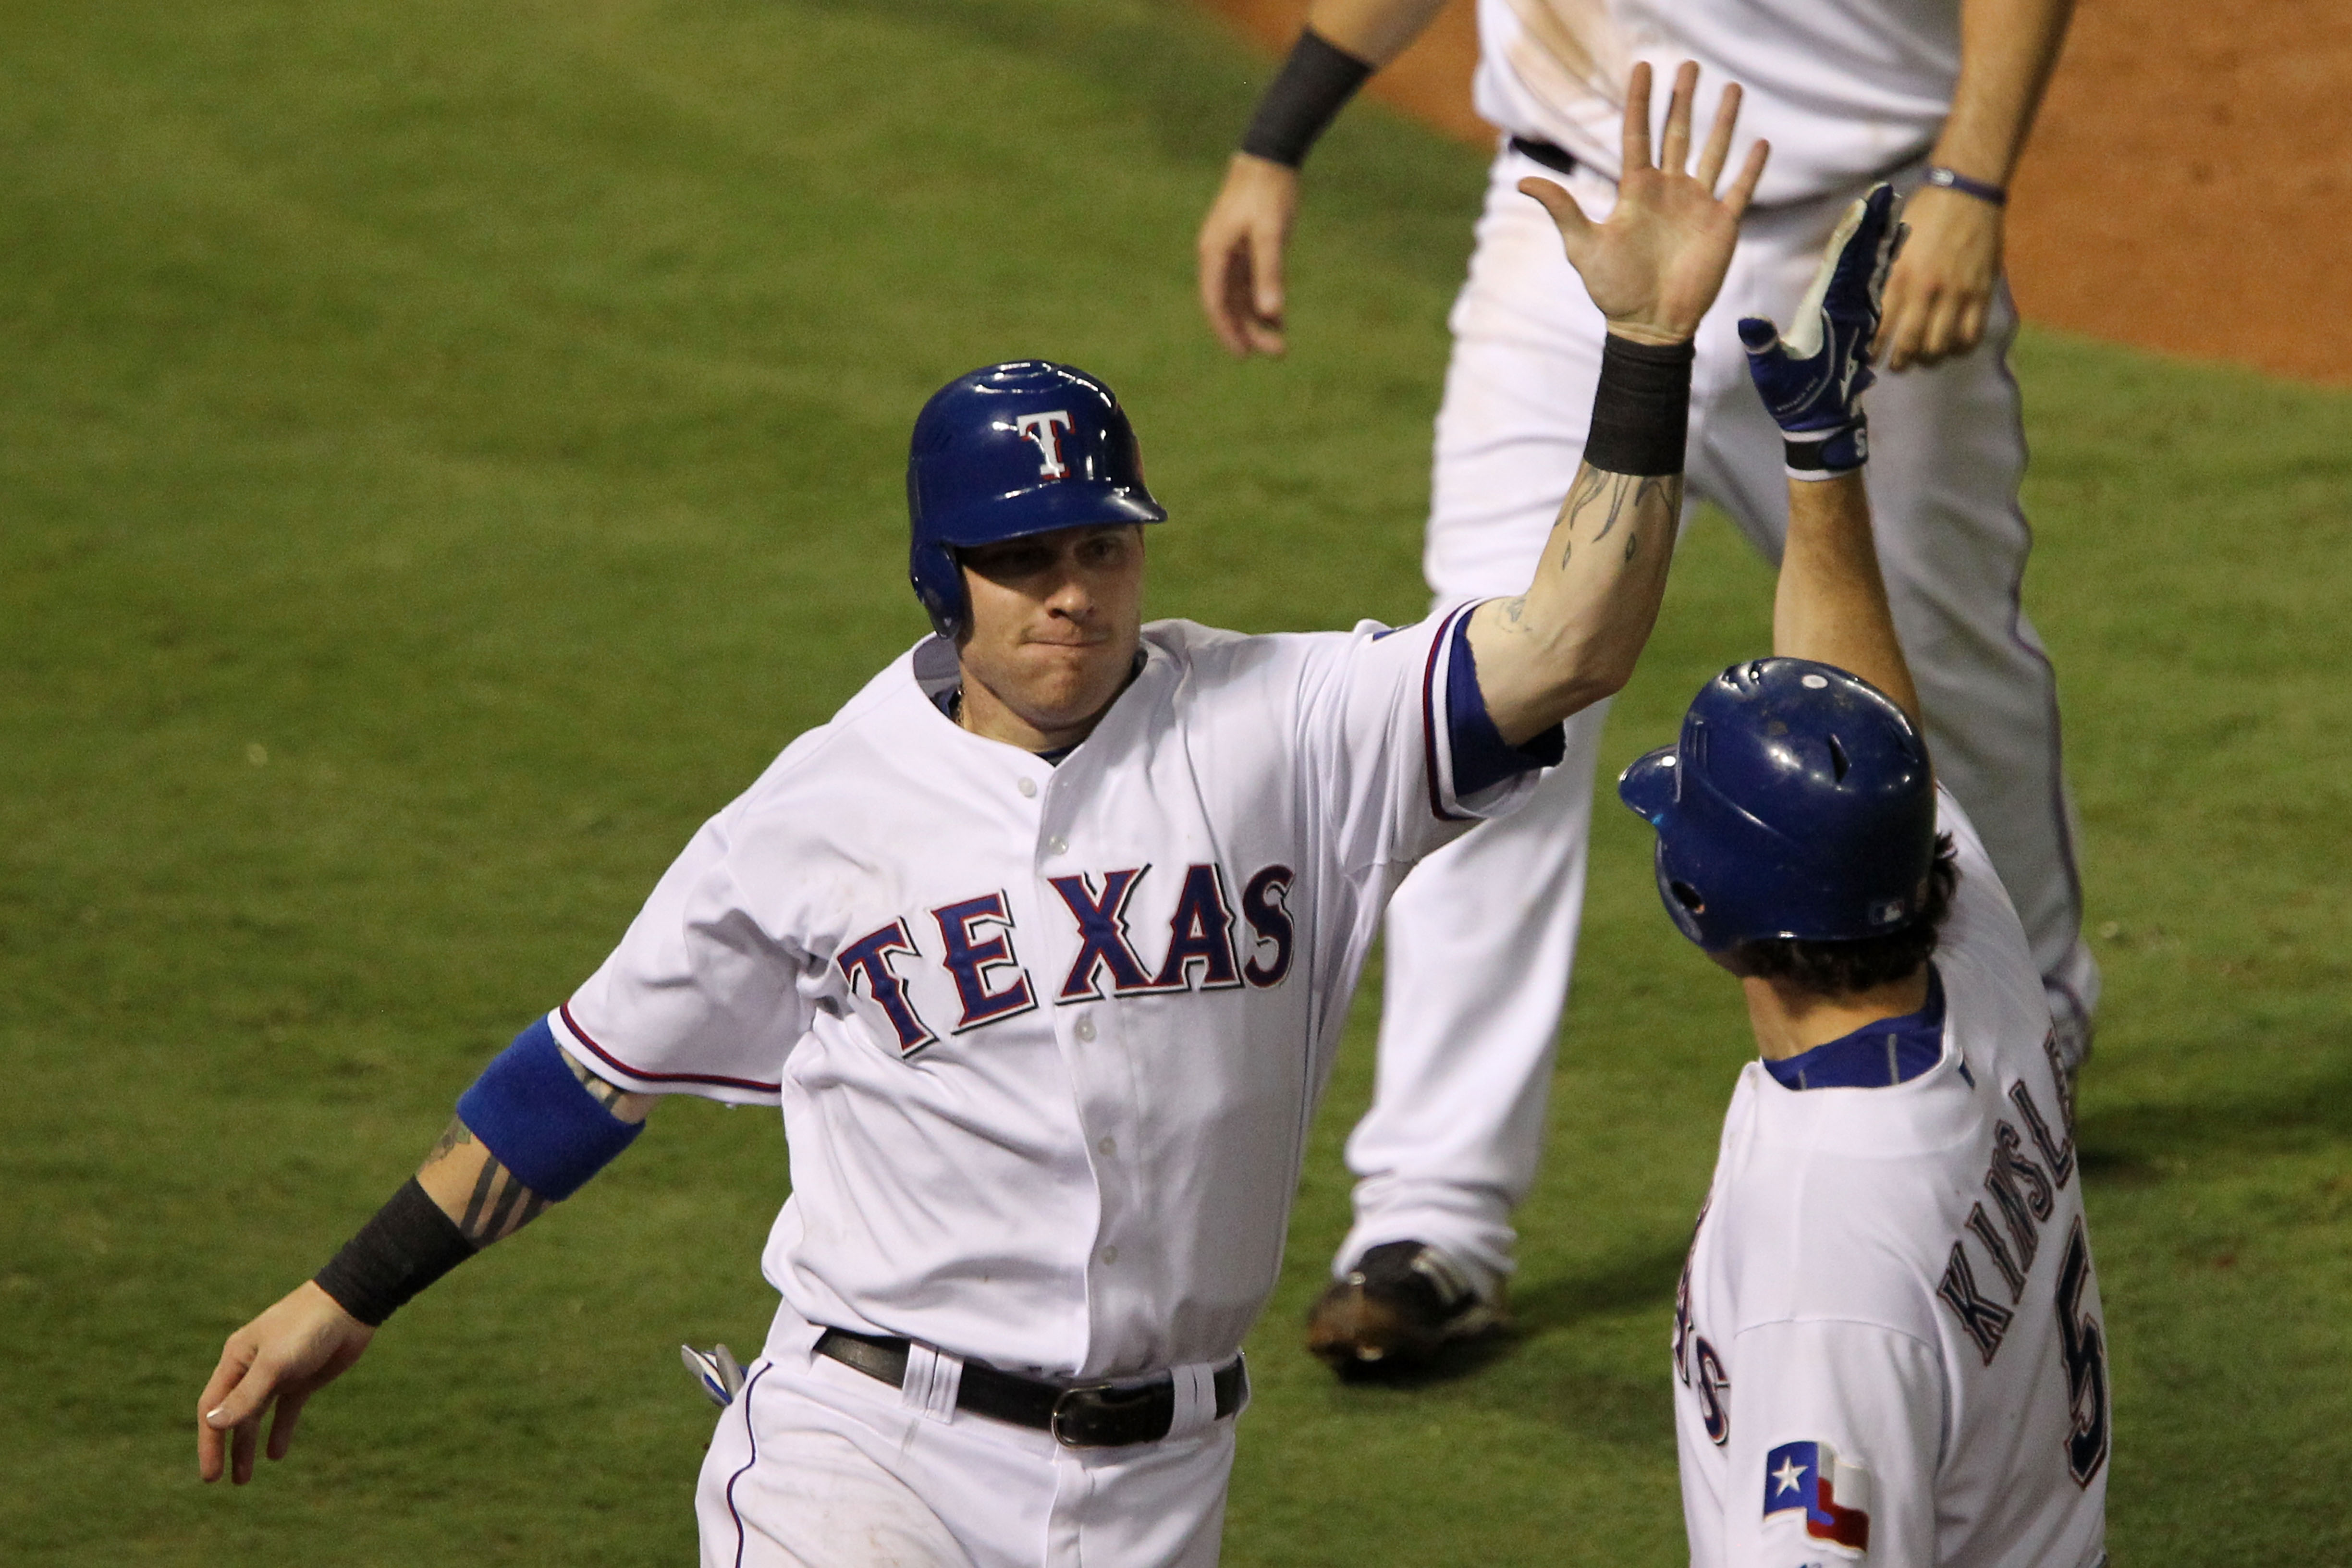 ARLINGTON, TX - OCTOBER 22:  Josh Hamilton #32 of the Texas Rangers celebrates with Ian Kinsler #5 after scoring on a double by Vladimir Guerrero #27 in the fifth inning of Game Six of the ALCS against the New York Yankees during the 2010 MLB Playoffs at